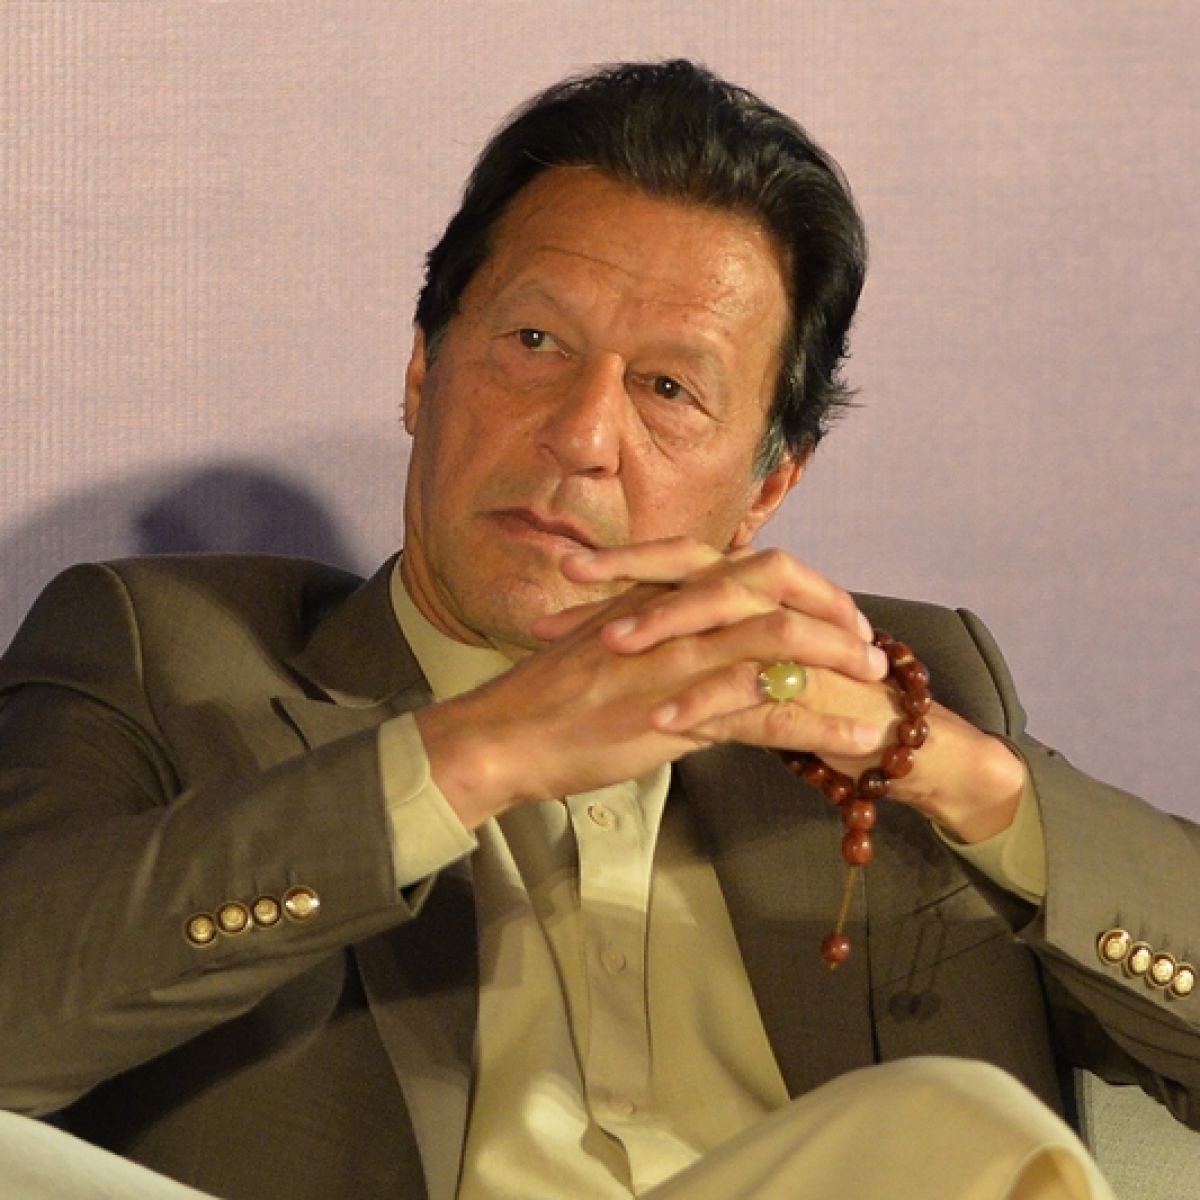 US evacuates 75 staff members from Islamabad, even as Pakistan PM Imran Khan refuses to impose nationwide lockdown